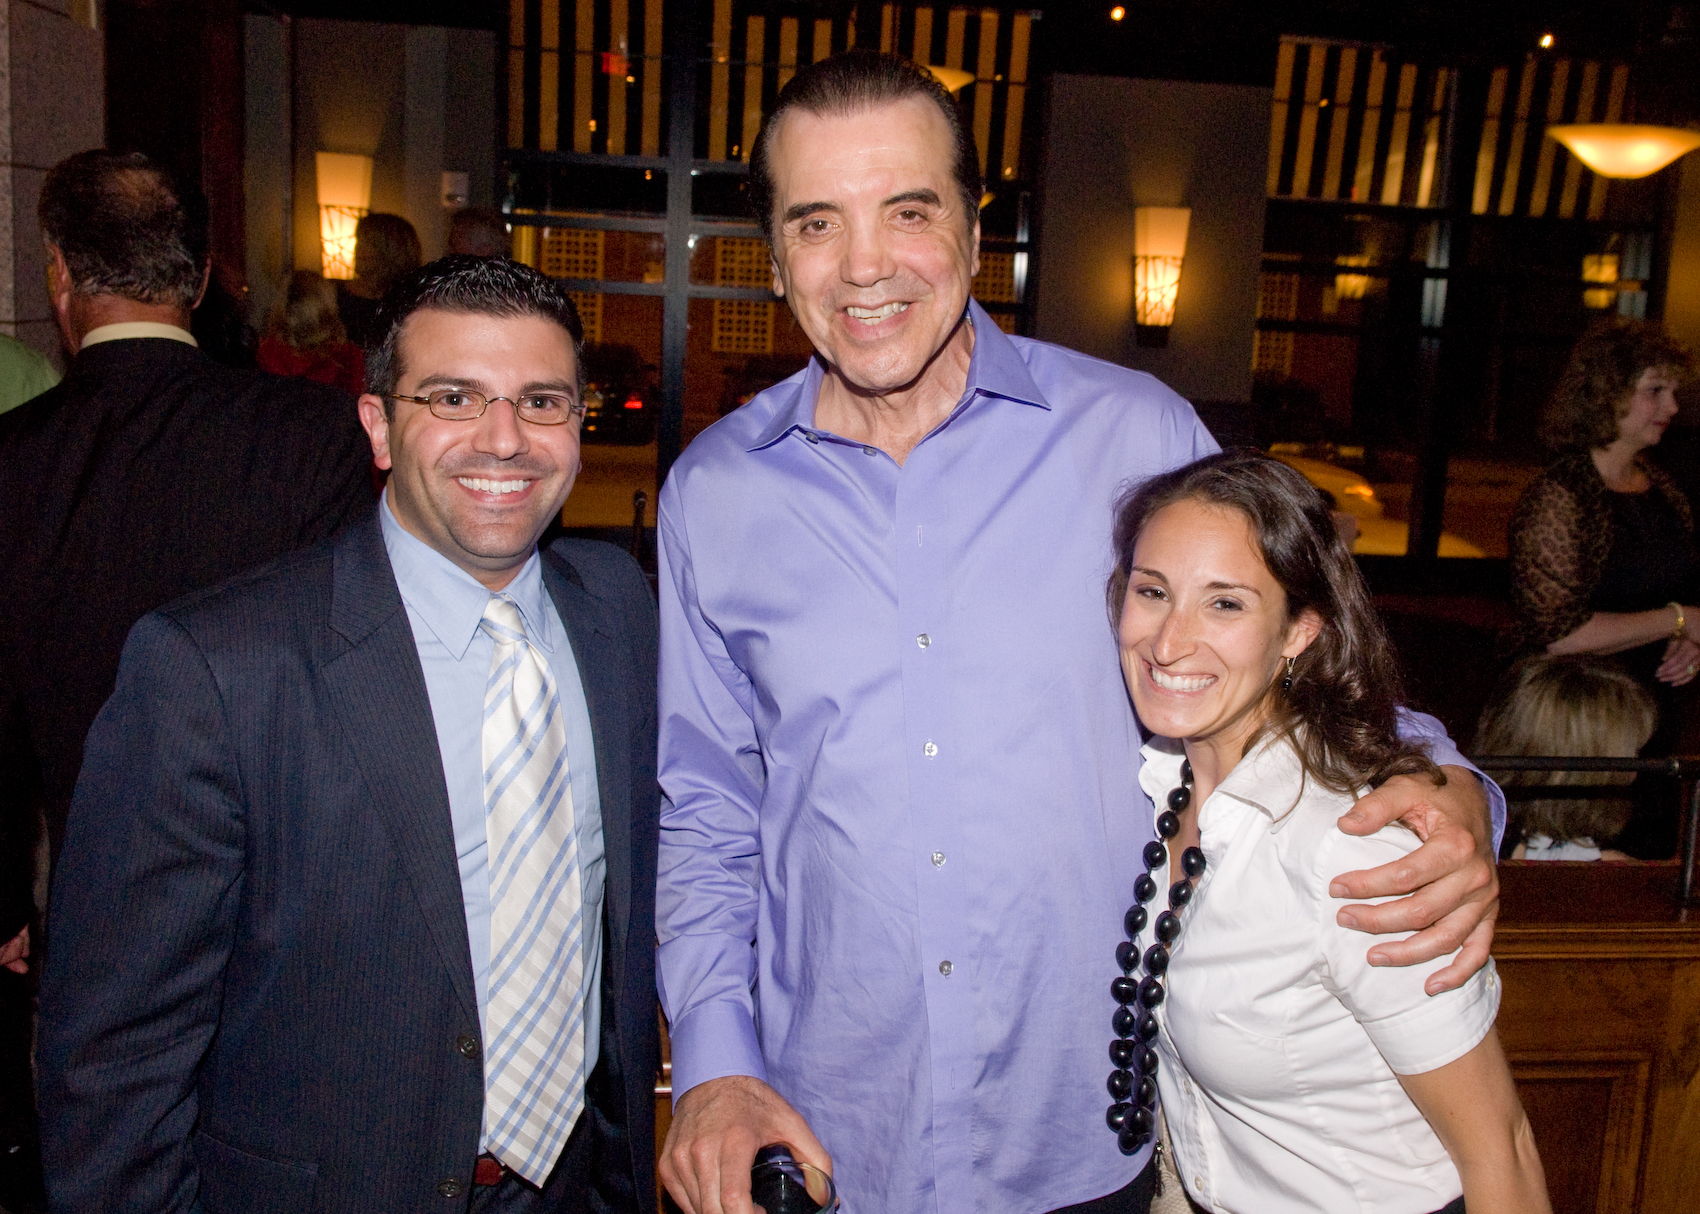 Chazz Palminteri High Definition Wallpapers